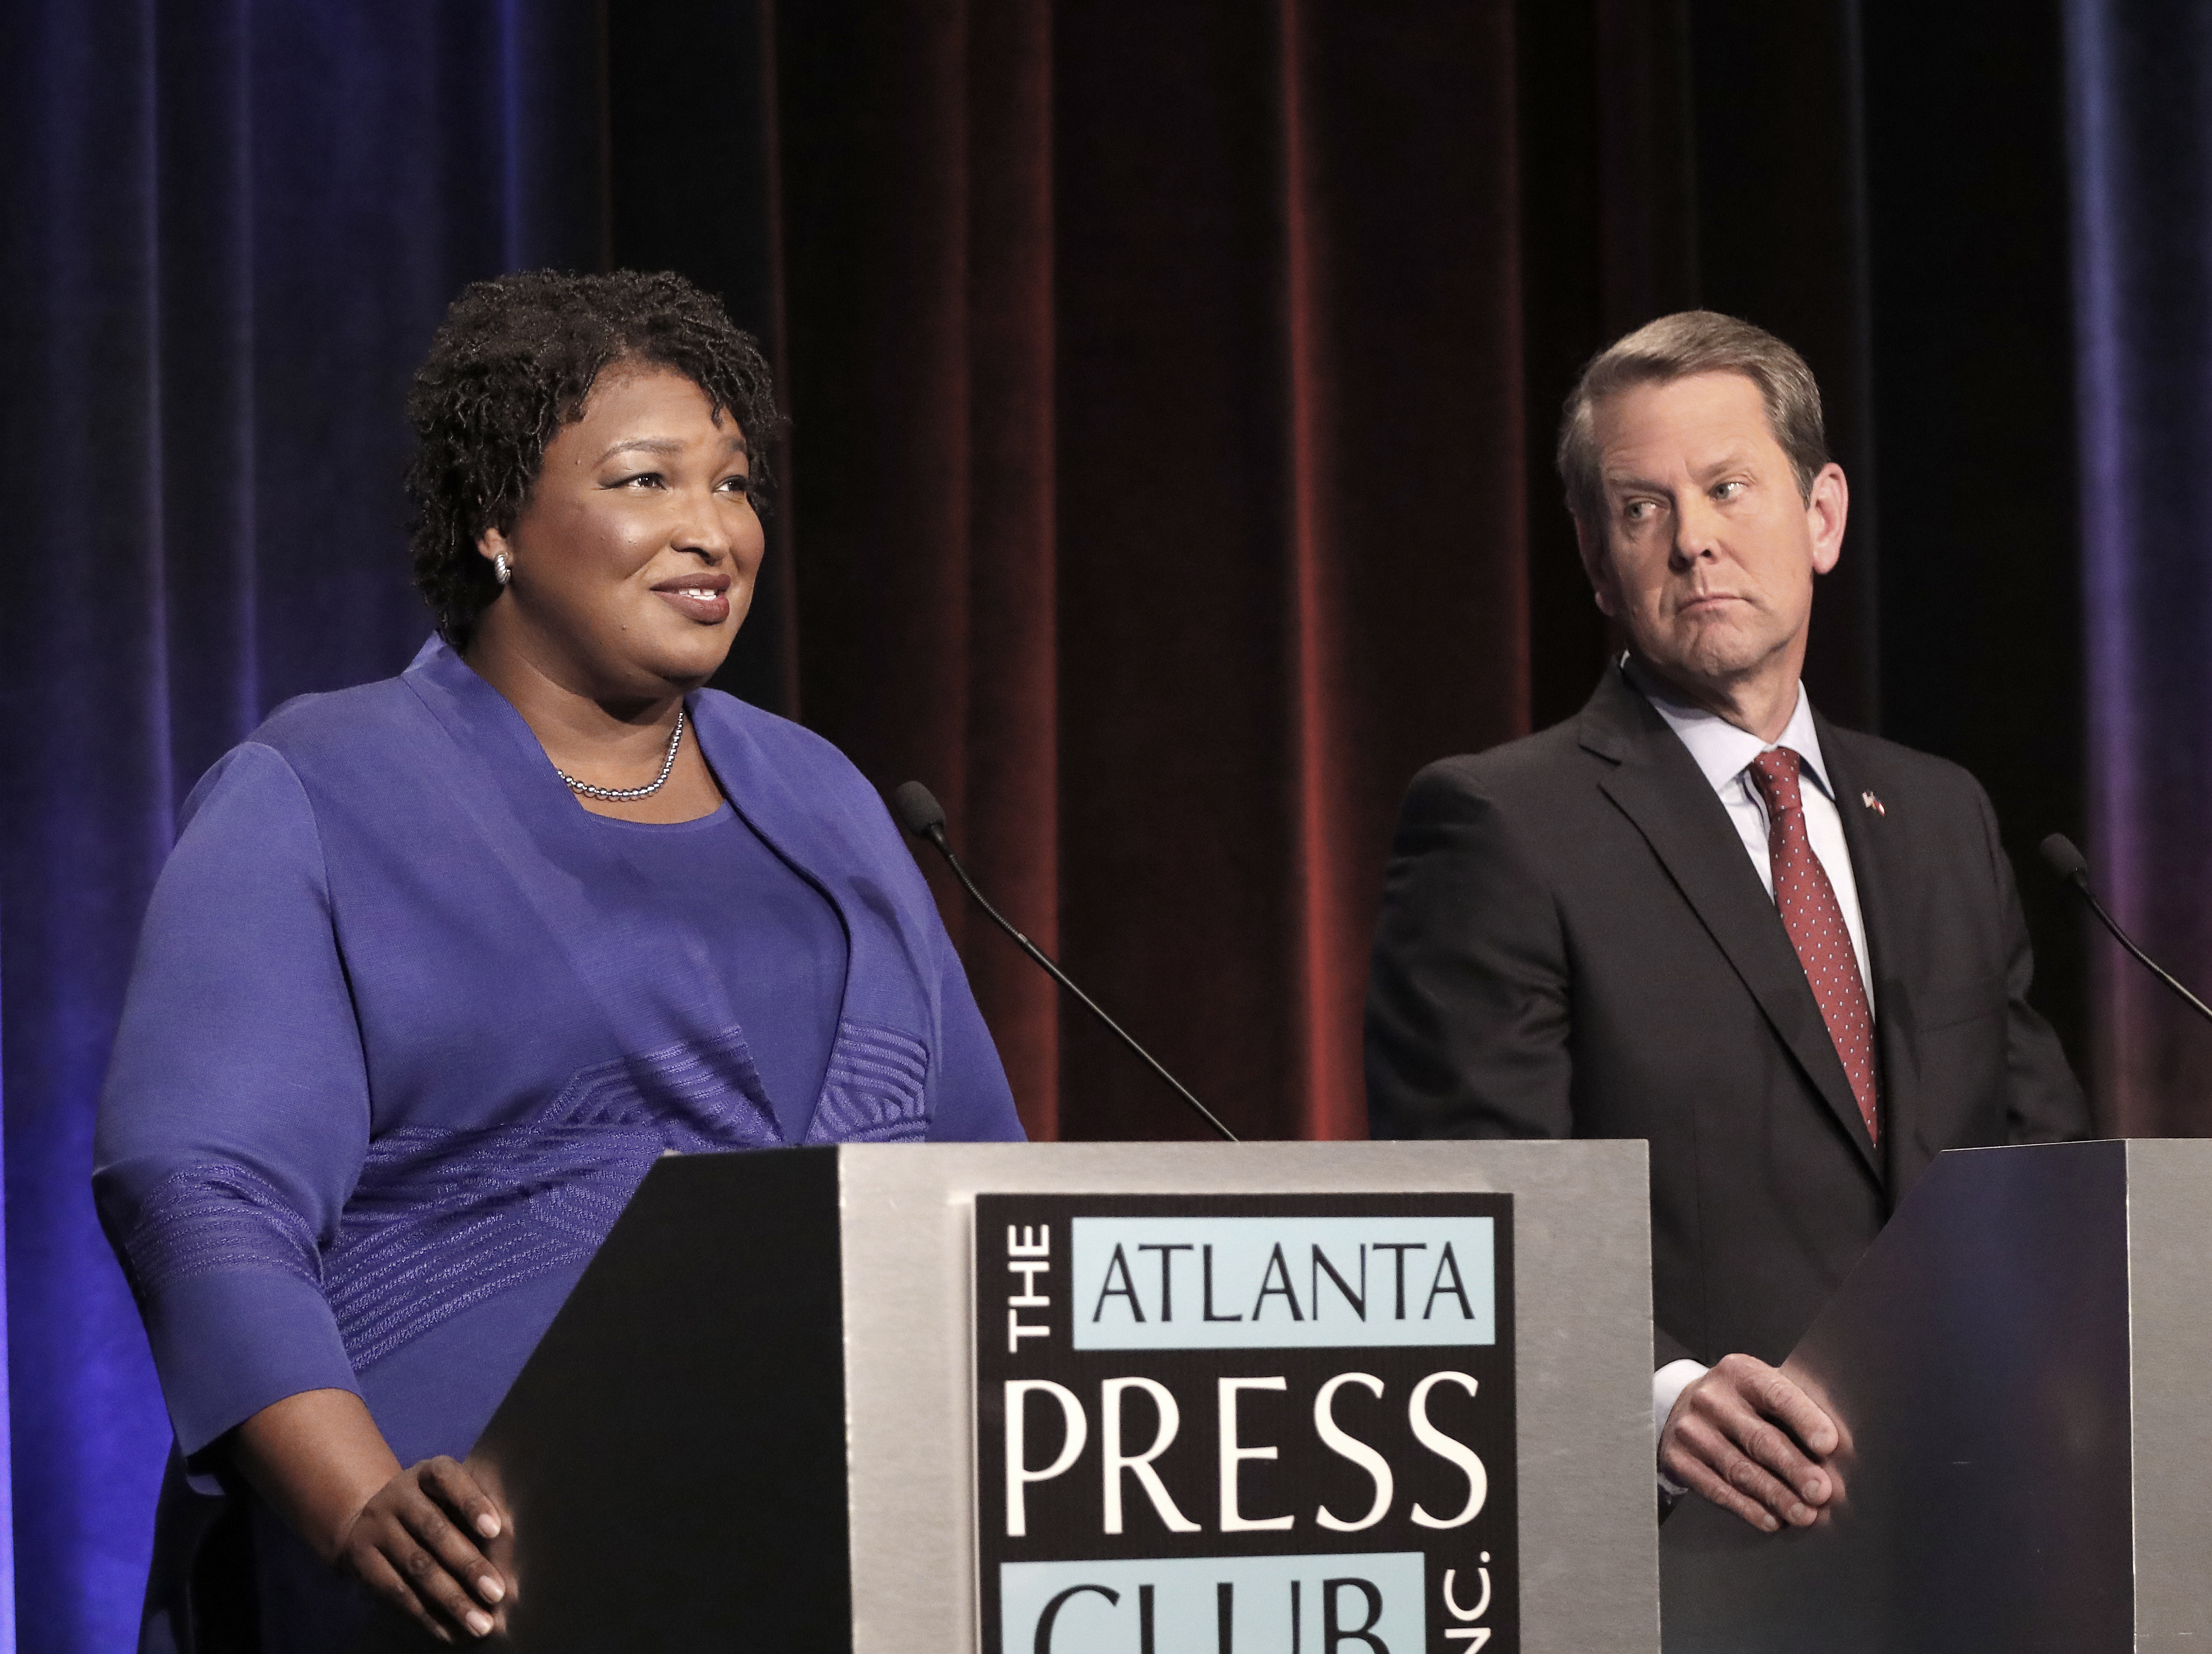 Georgia gubernatorial candidates Democrat Stacey Abrams and Republican Brian Kemp debate in an event that also included Libertarian Ted Metz at Georgia Public Broadcasting in Midtown October 23, 2018 in Atlanta, Georgia. John Bazemore-Pool/Getty Images